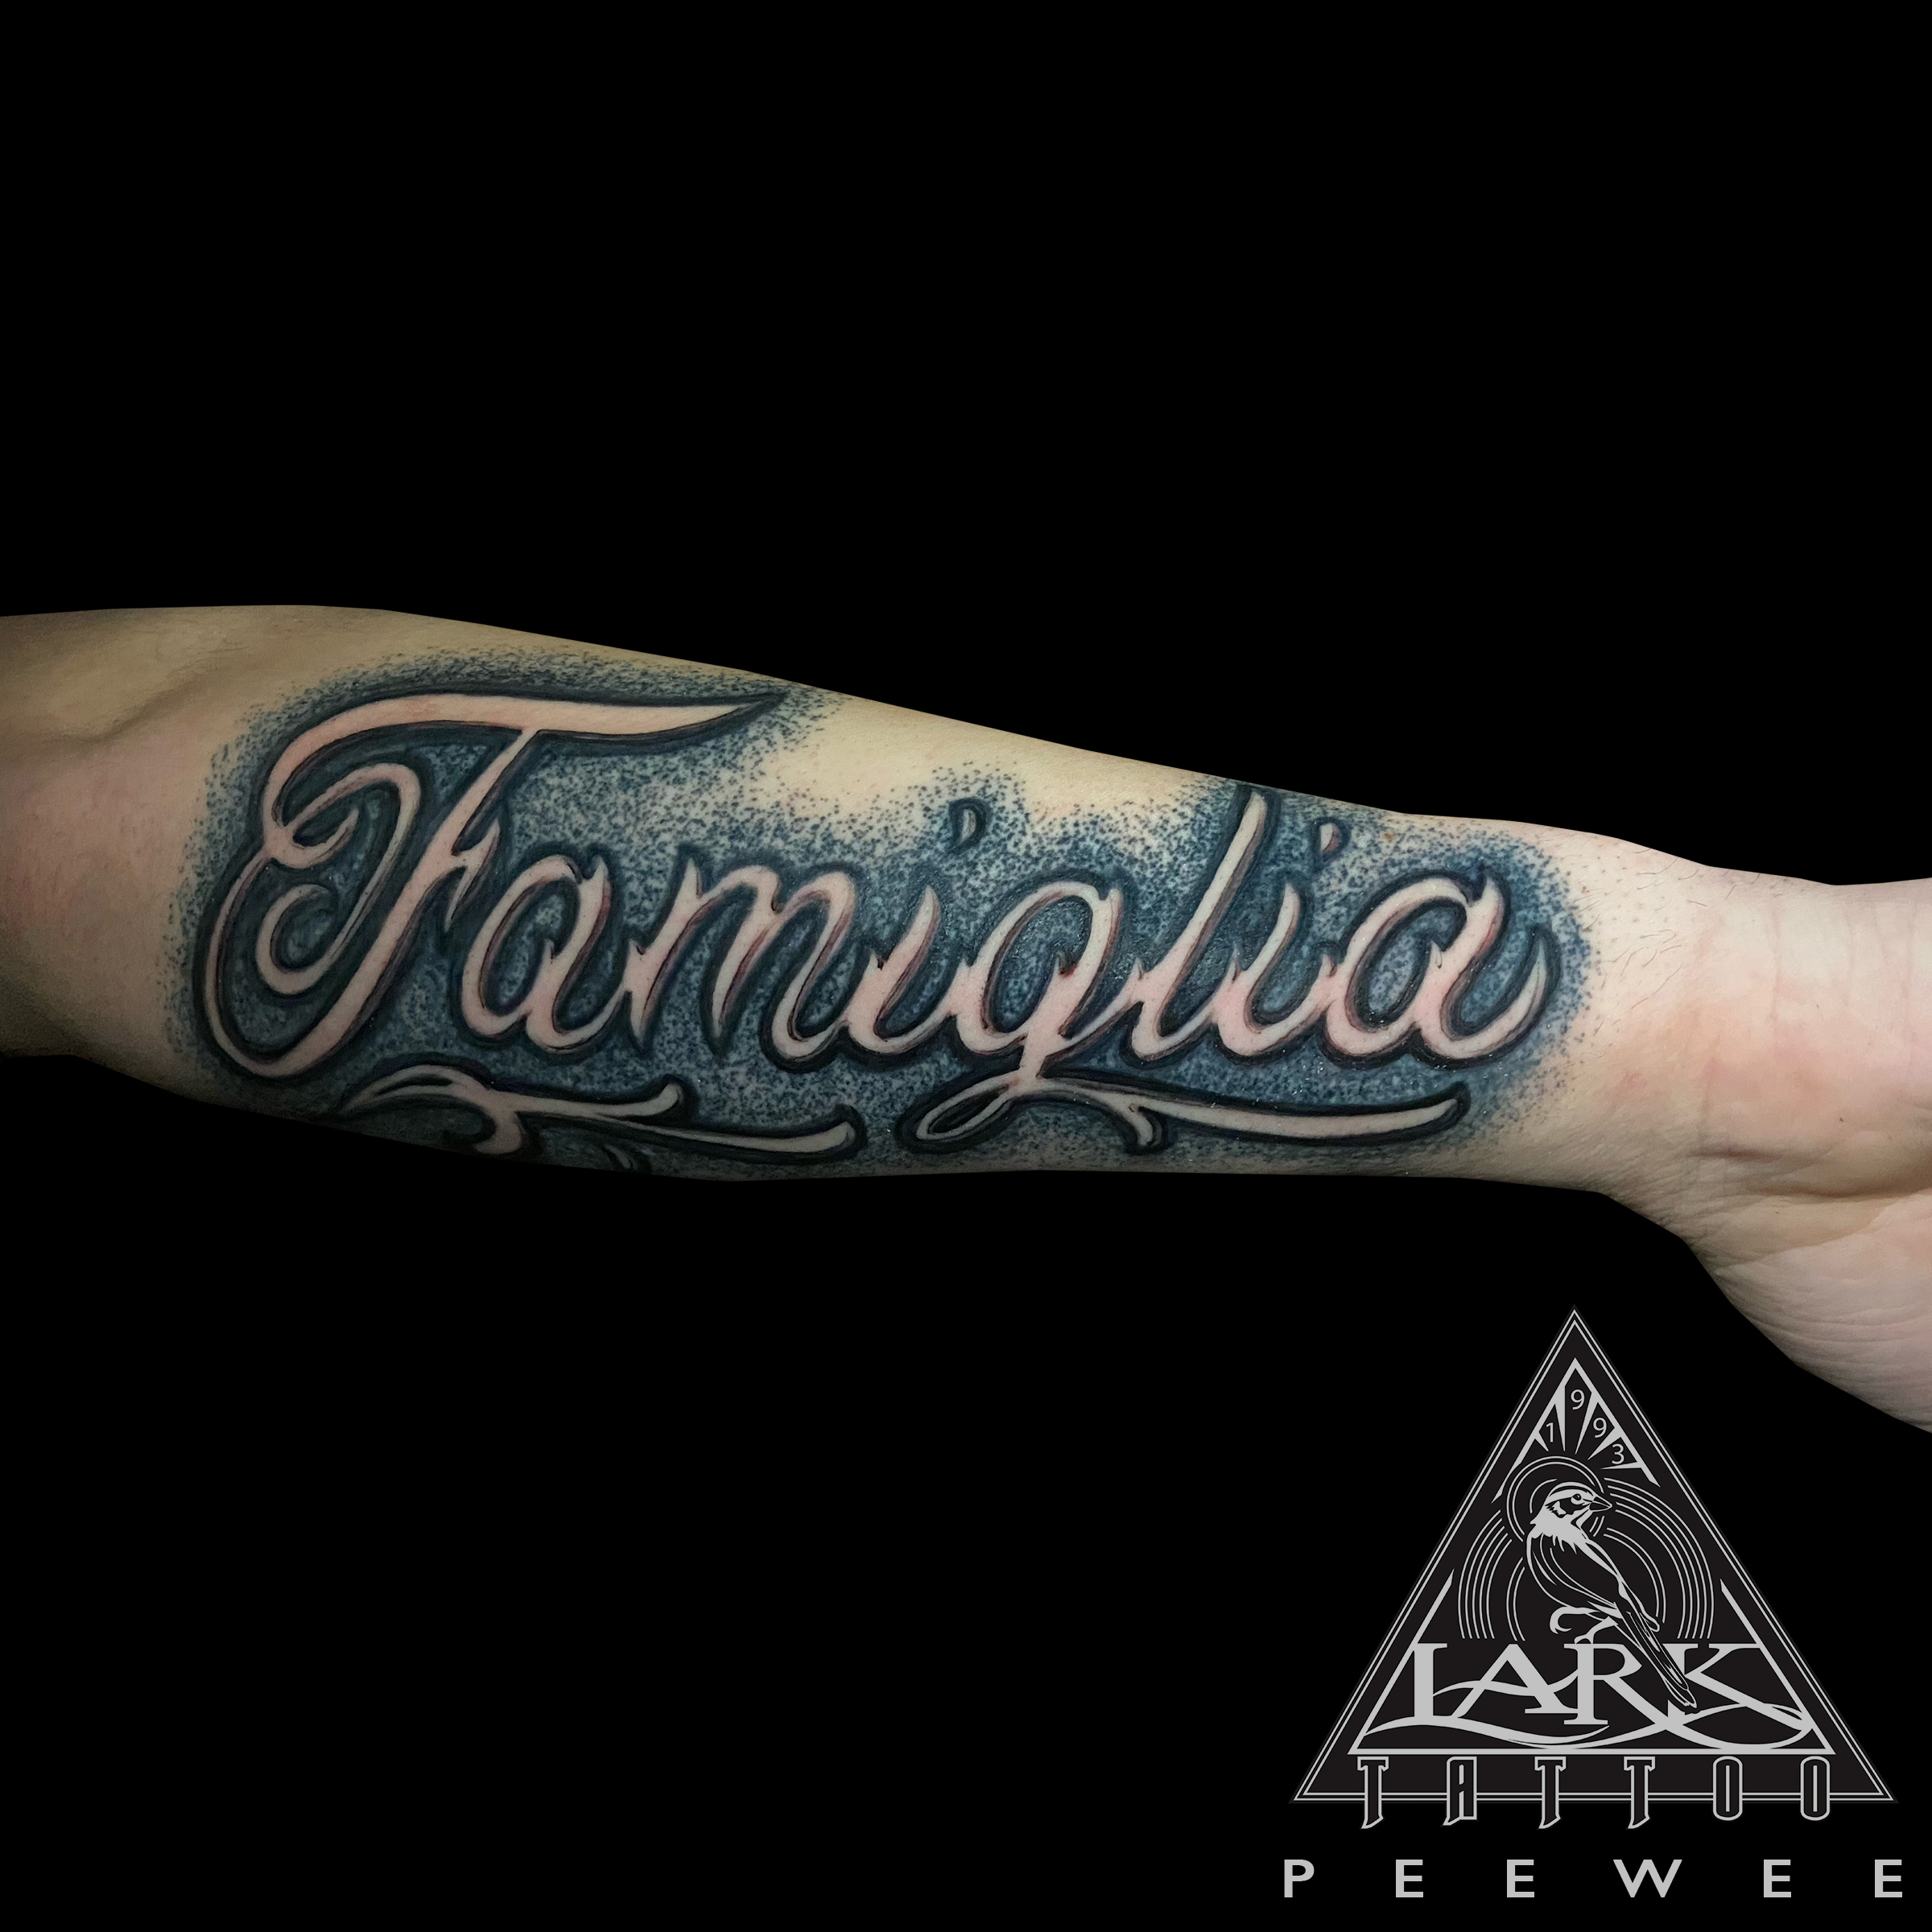 #Famiglia #FamigliaTattoo #Family #FamilyTattoo #Lettering #LetteringTattoo #Script #ScriptTattoo #BNG #BNGTattoo #BlackAndgGrey #BlackAndgGreyTattoo #BlackAndGray #BlackAndGrayTattoo #LarkTattoo #PeeWee #PeeWeeLarkTattoo #AnthonyPeeWeeSinerco #AnthonySinerco #Tattoo #Tattoos #TattooArtist #Tattoist #Tattooer #LongIslandTattooArtist #LongIslandTattooer #LongIslandTattoo #TattooOfTheDay #Tat #Tats #Tatts #Tatted #Inked #Ink #TattooInk #AmazingInk #AmazingTattoo #BodyArt #LarkTattooWestbury #Westbury #LongIsland #NY #NewYork #USA #Art #Tattedup #InkedUp #LarkTattoos